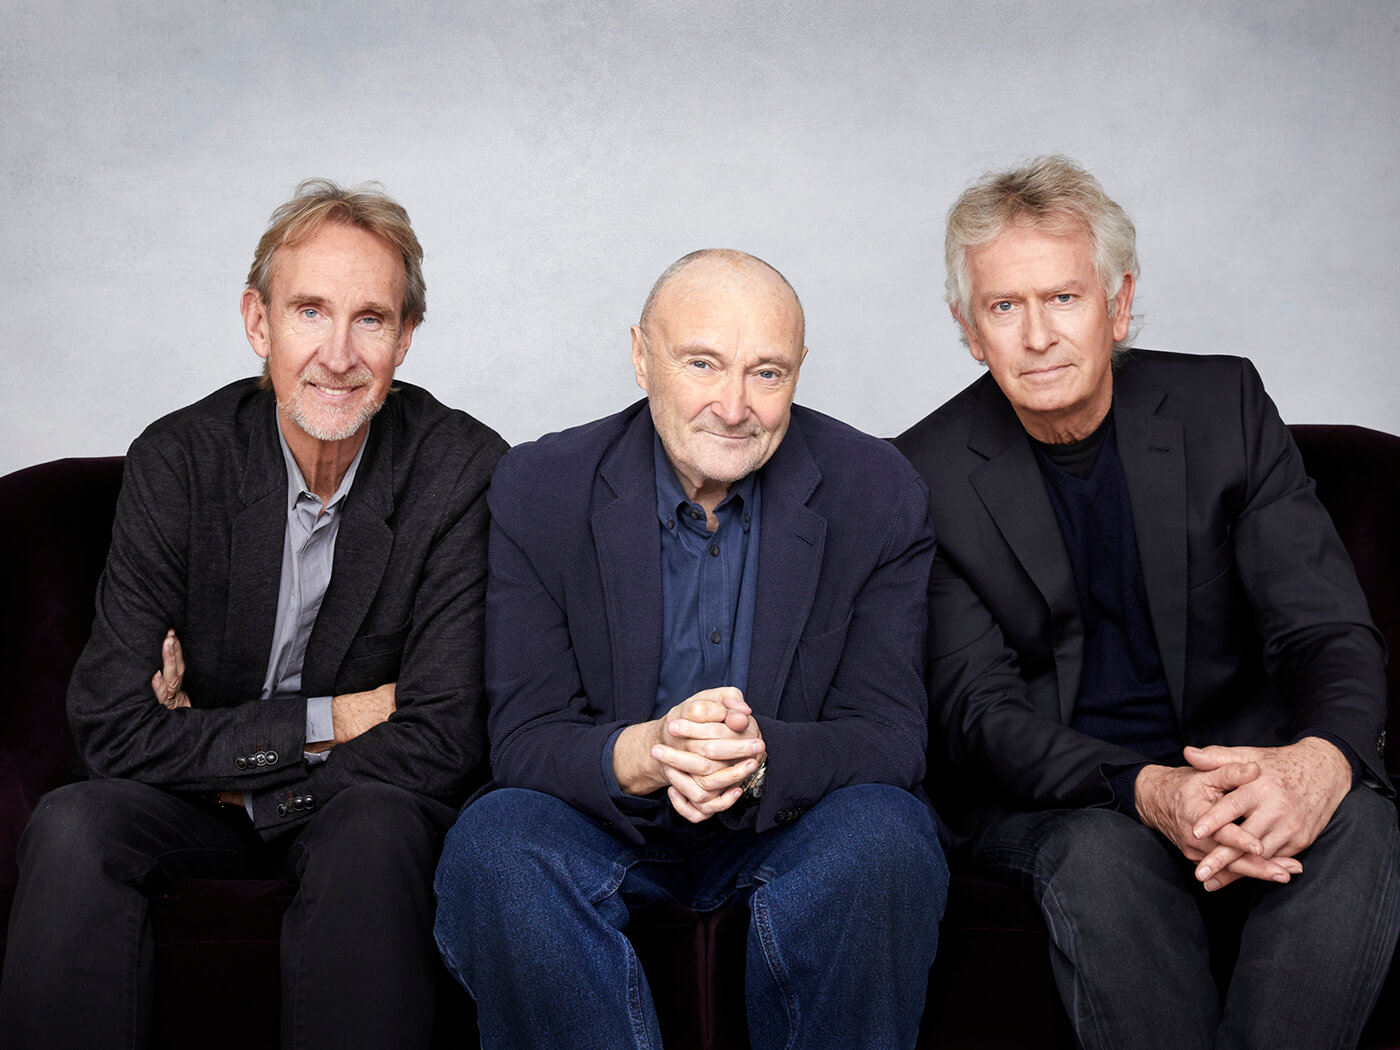 Genesis announce first tour for 13 years